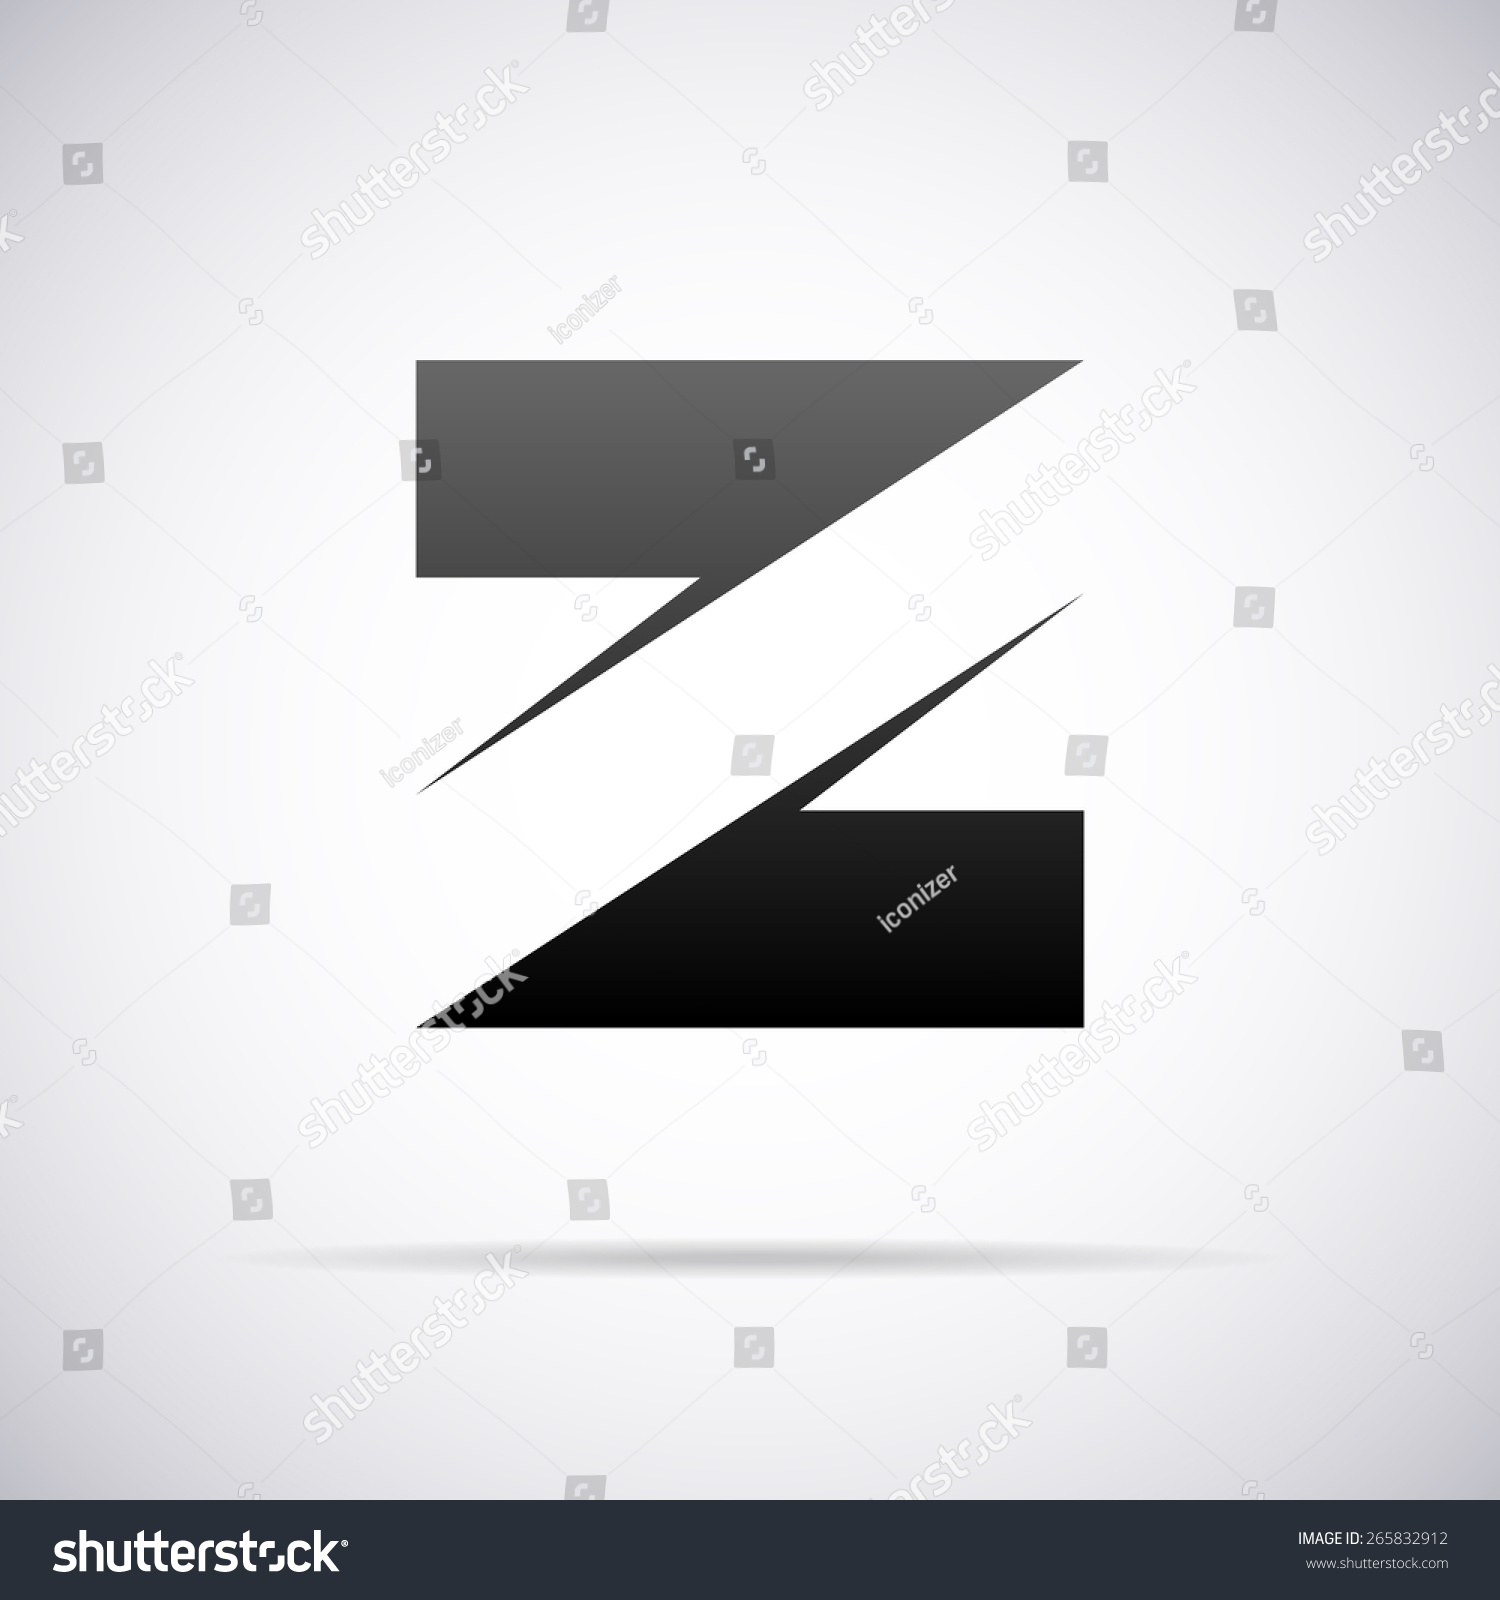 Restaurar Muebles Chapados Letter S Logo Abstract Element Concept Company Logos